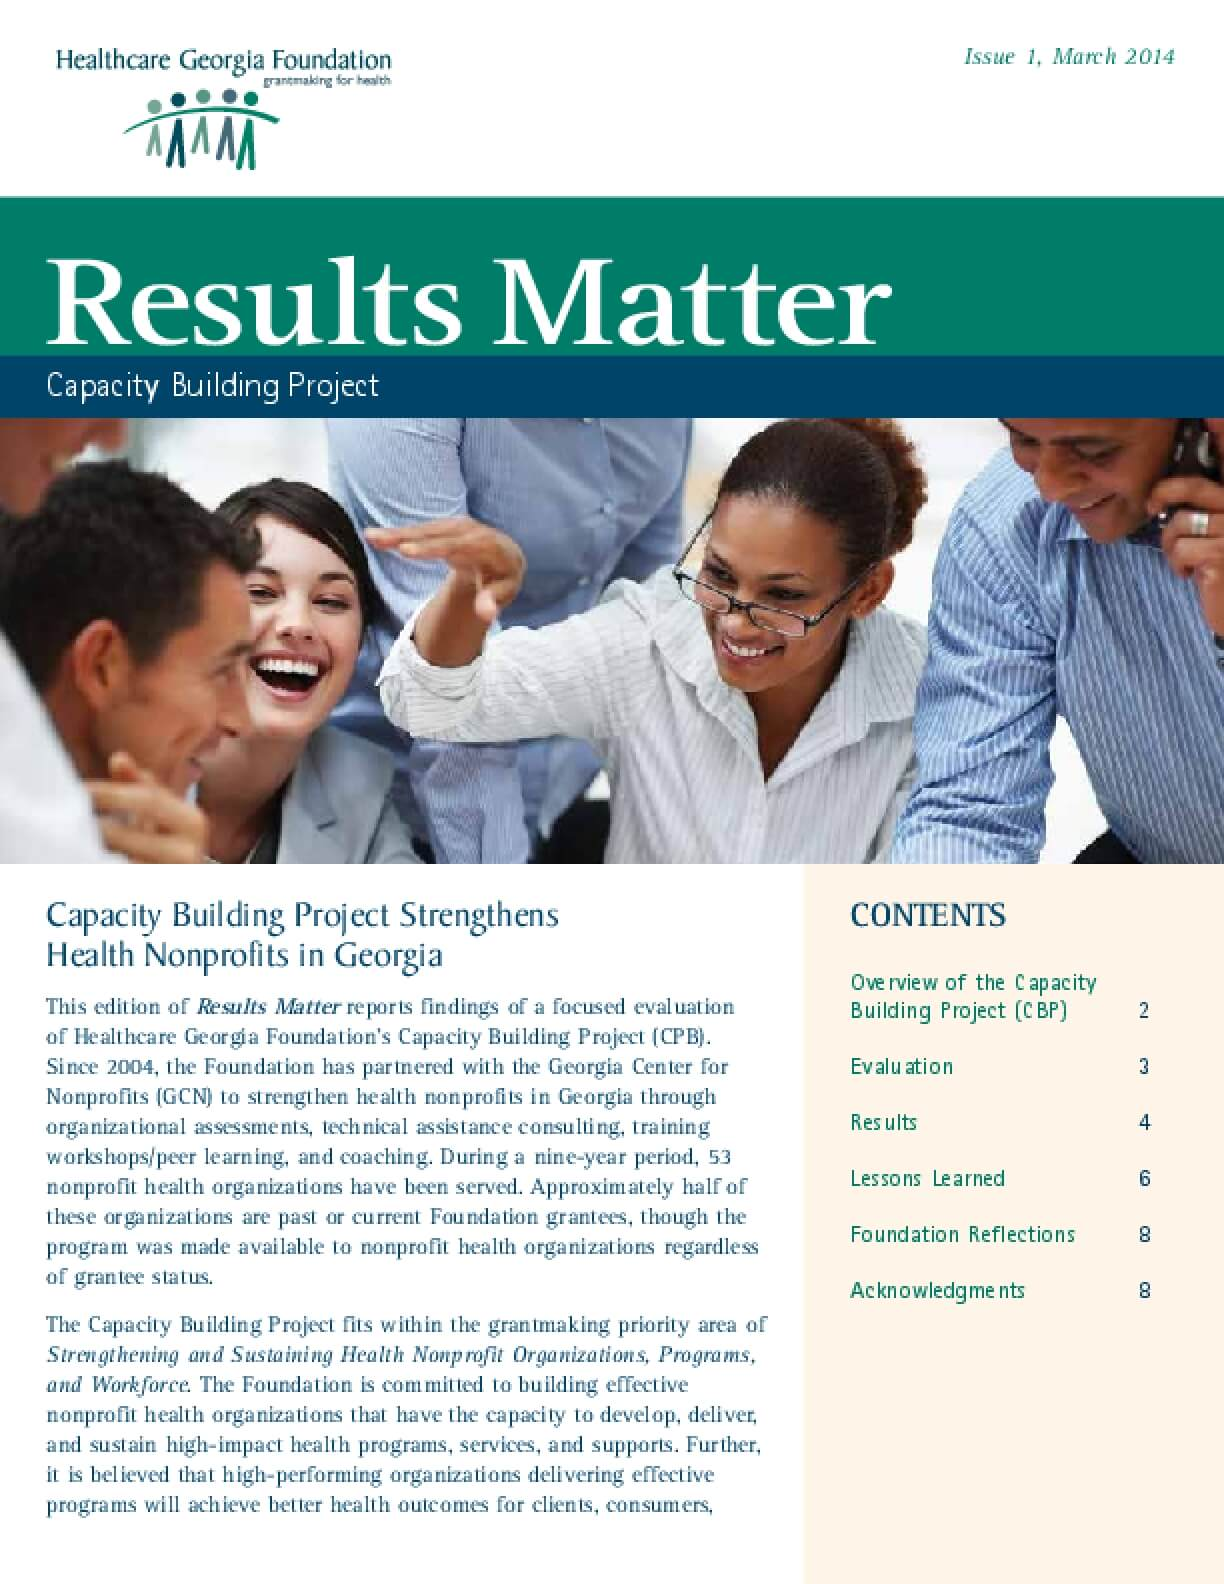 Results Matter: Capacity Building Project